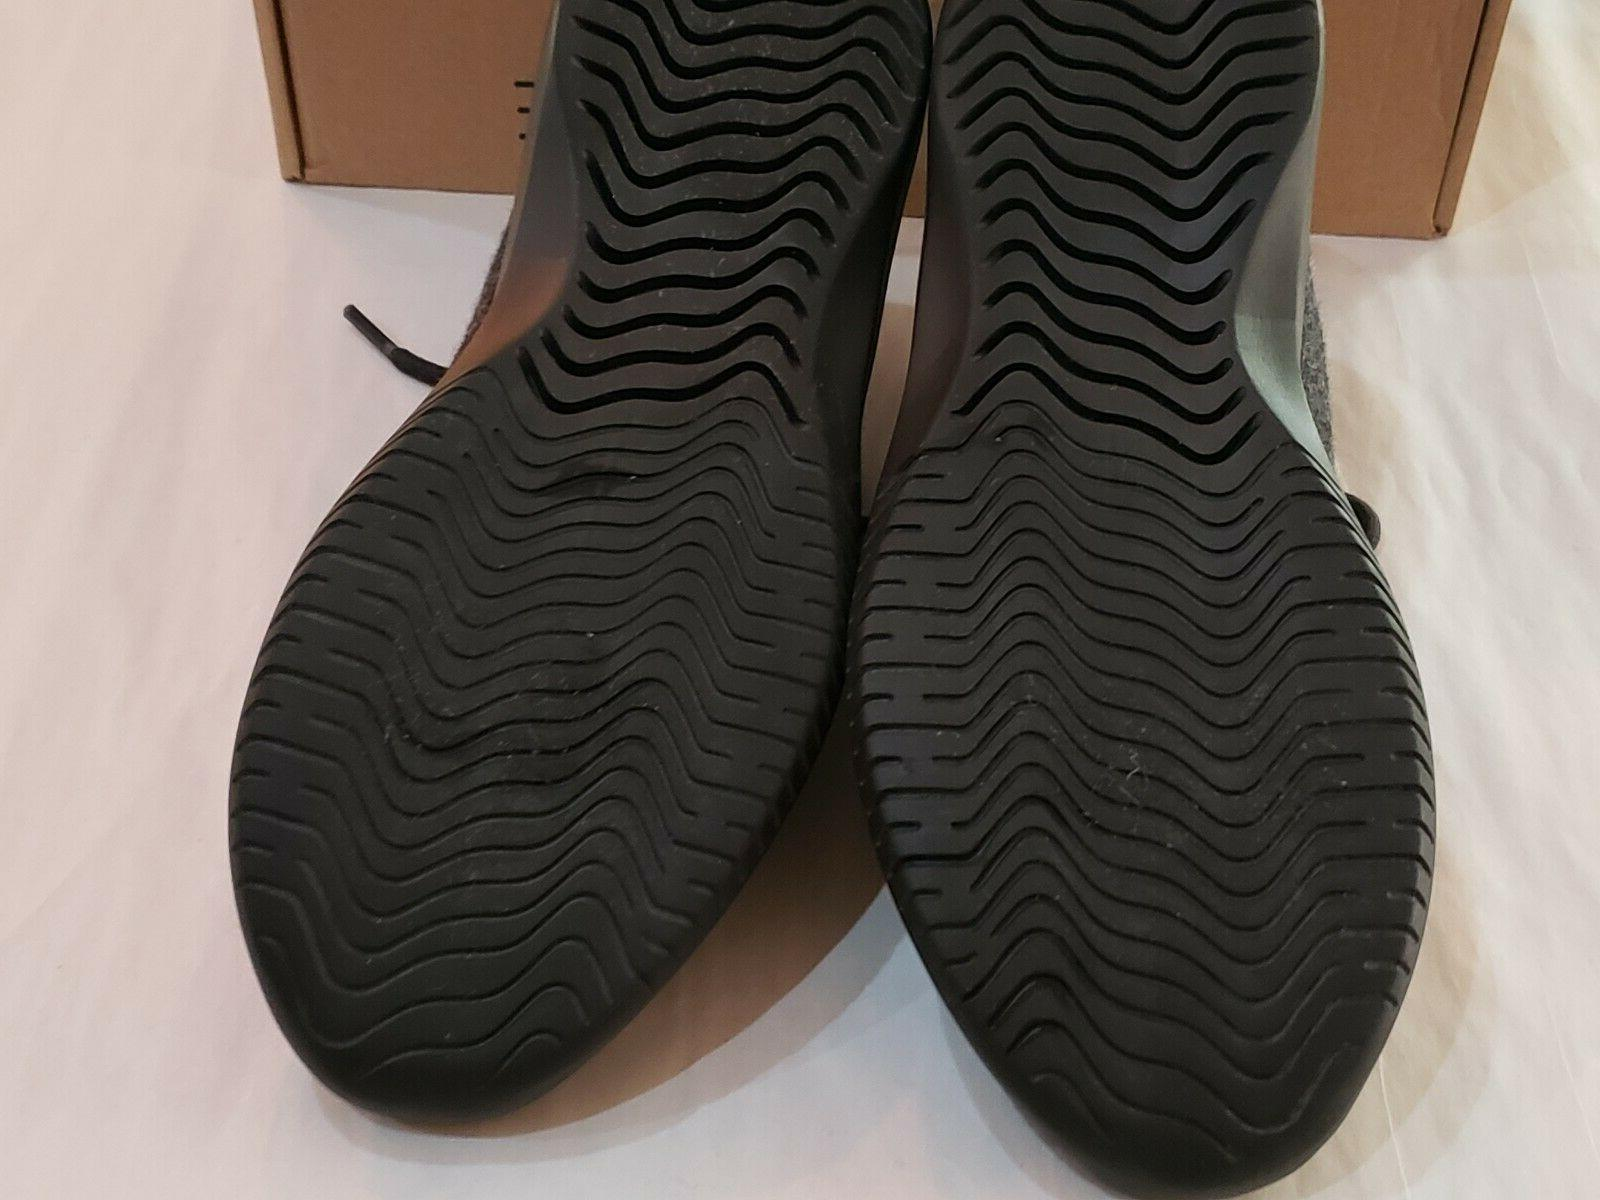 Amazon Brand Collective Blend size 8